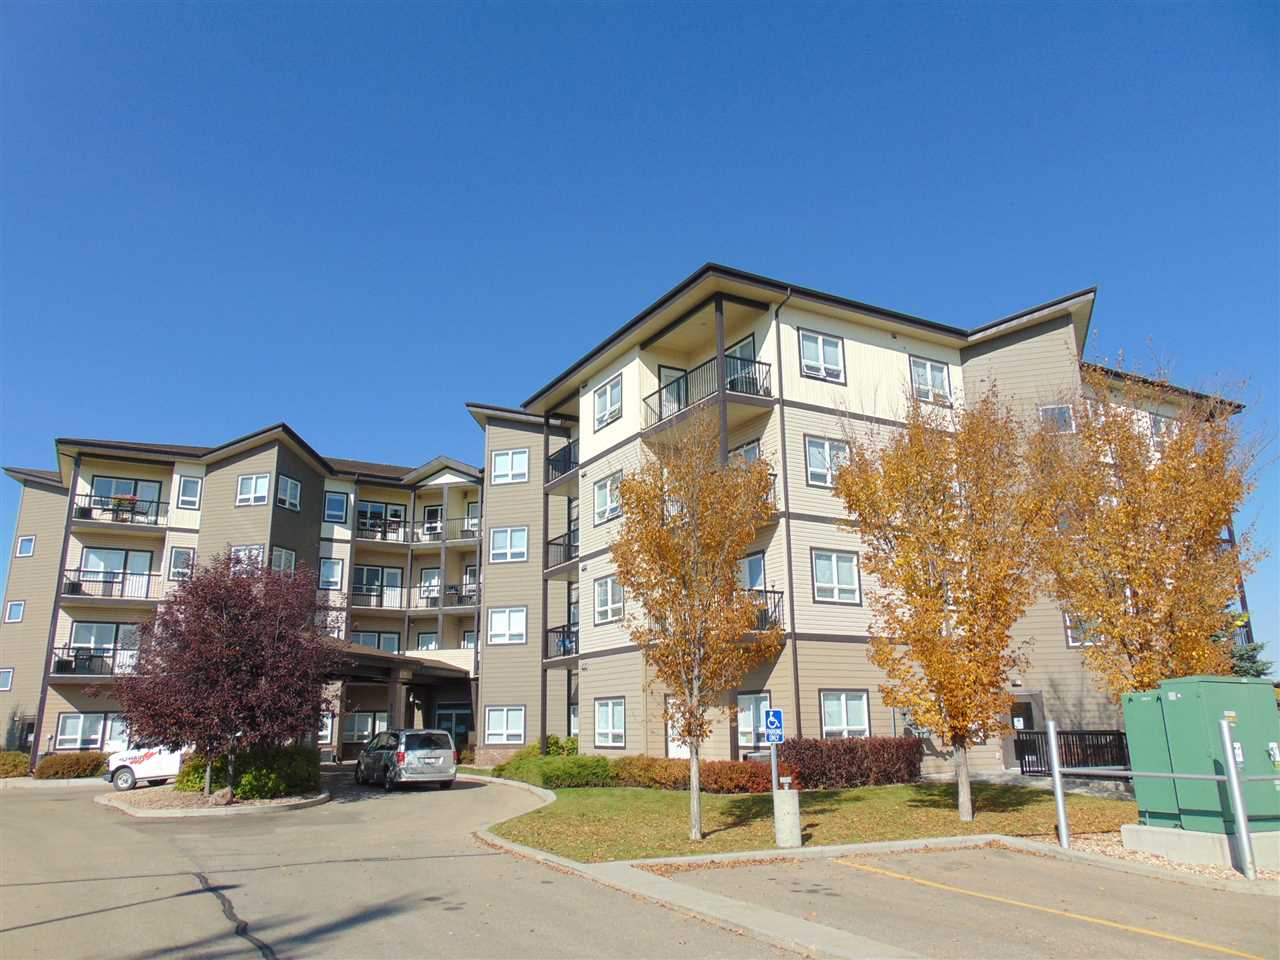 """WELCOME to this well maintained 2 bedroom condo in The Manor at Southfort - located walking distance to shopping, playgrounds, restaurants, retail and services. Owners can also use the amenities available in """"The Gardens"""" next door. NO age restrictions and pets are also allowed. This 3rd floor unit offers 6 appliances, air conditioning, roomy kitchen and 2 bedrooms, both large enough to accommodate queen sized beds. Living room offers a garden door to south facing deck. Spacious foyer and large laundry/storage is a PLUS! Heated underground parking stall included too!"""